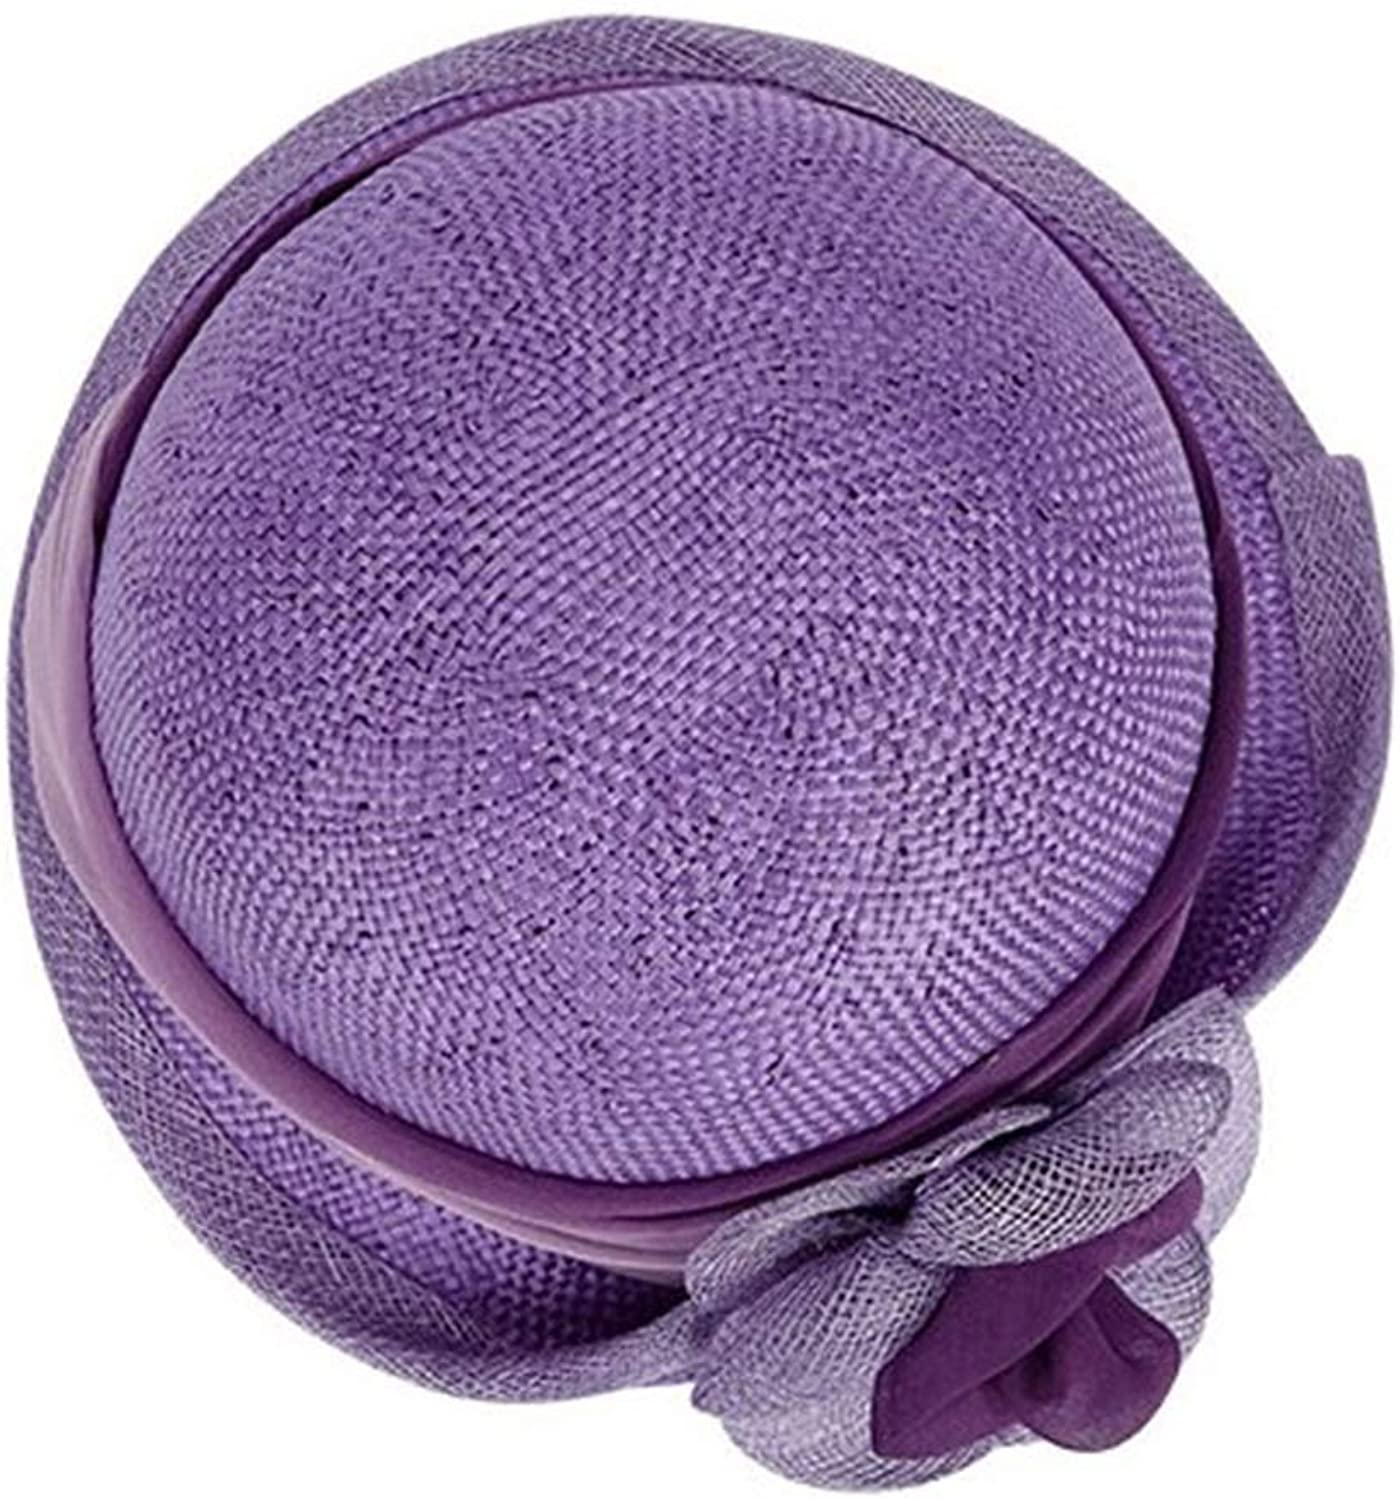 CEFULTY Spring and Summer Sisal Hats Hemp Yarn Flowers Mesh Hats Ladies Beach Vacation Visor (color   Purple, Size   One Size)